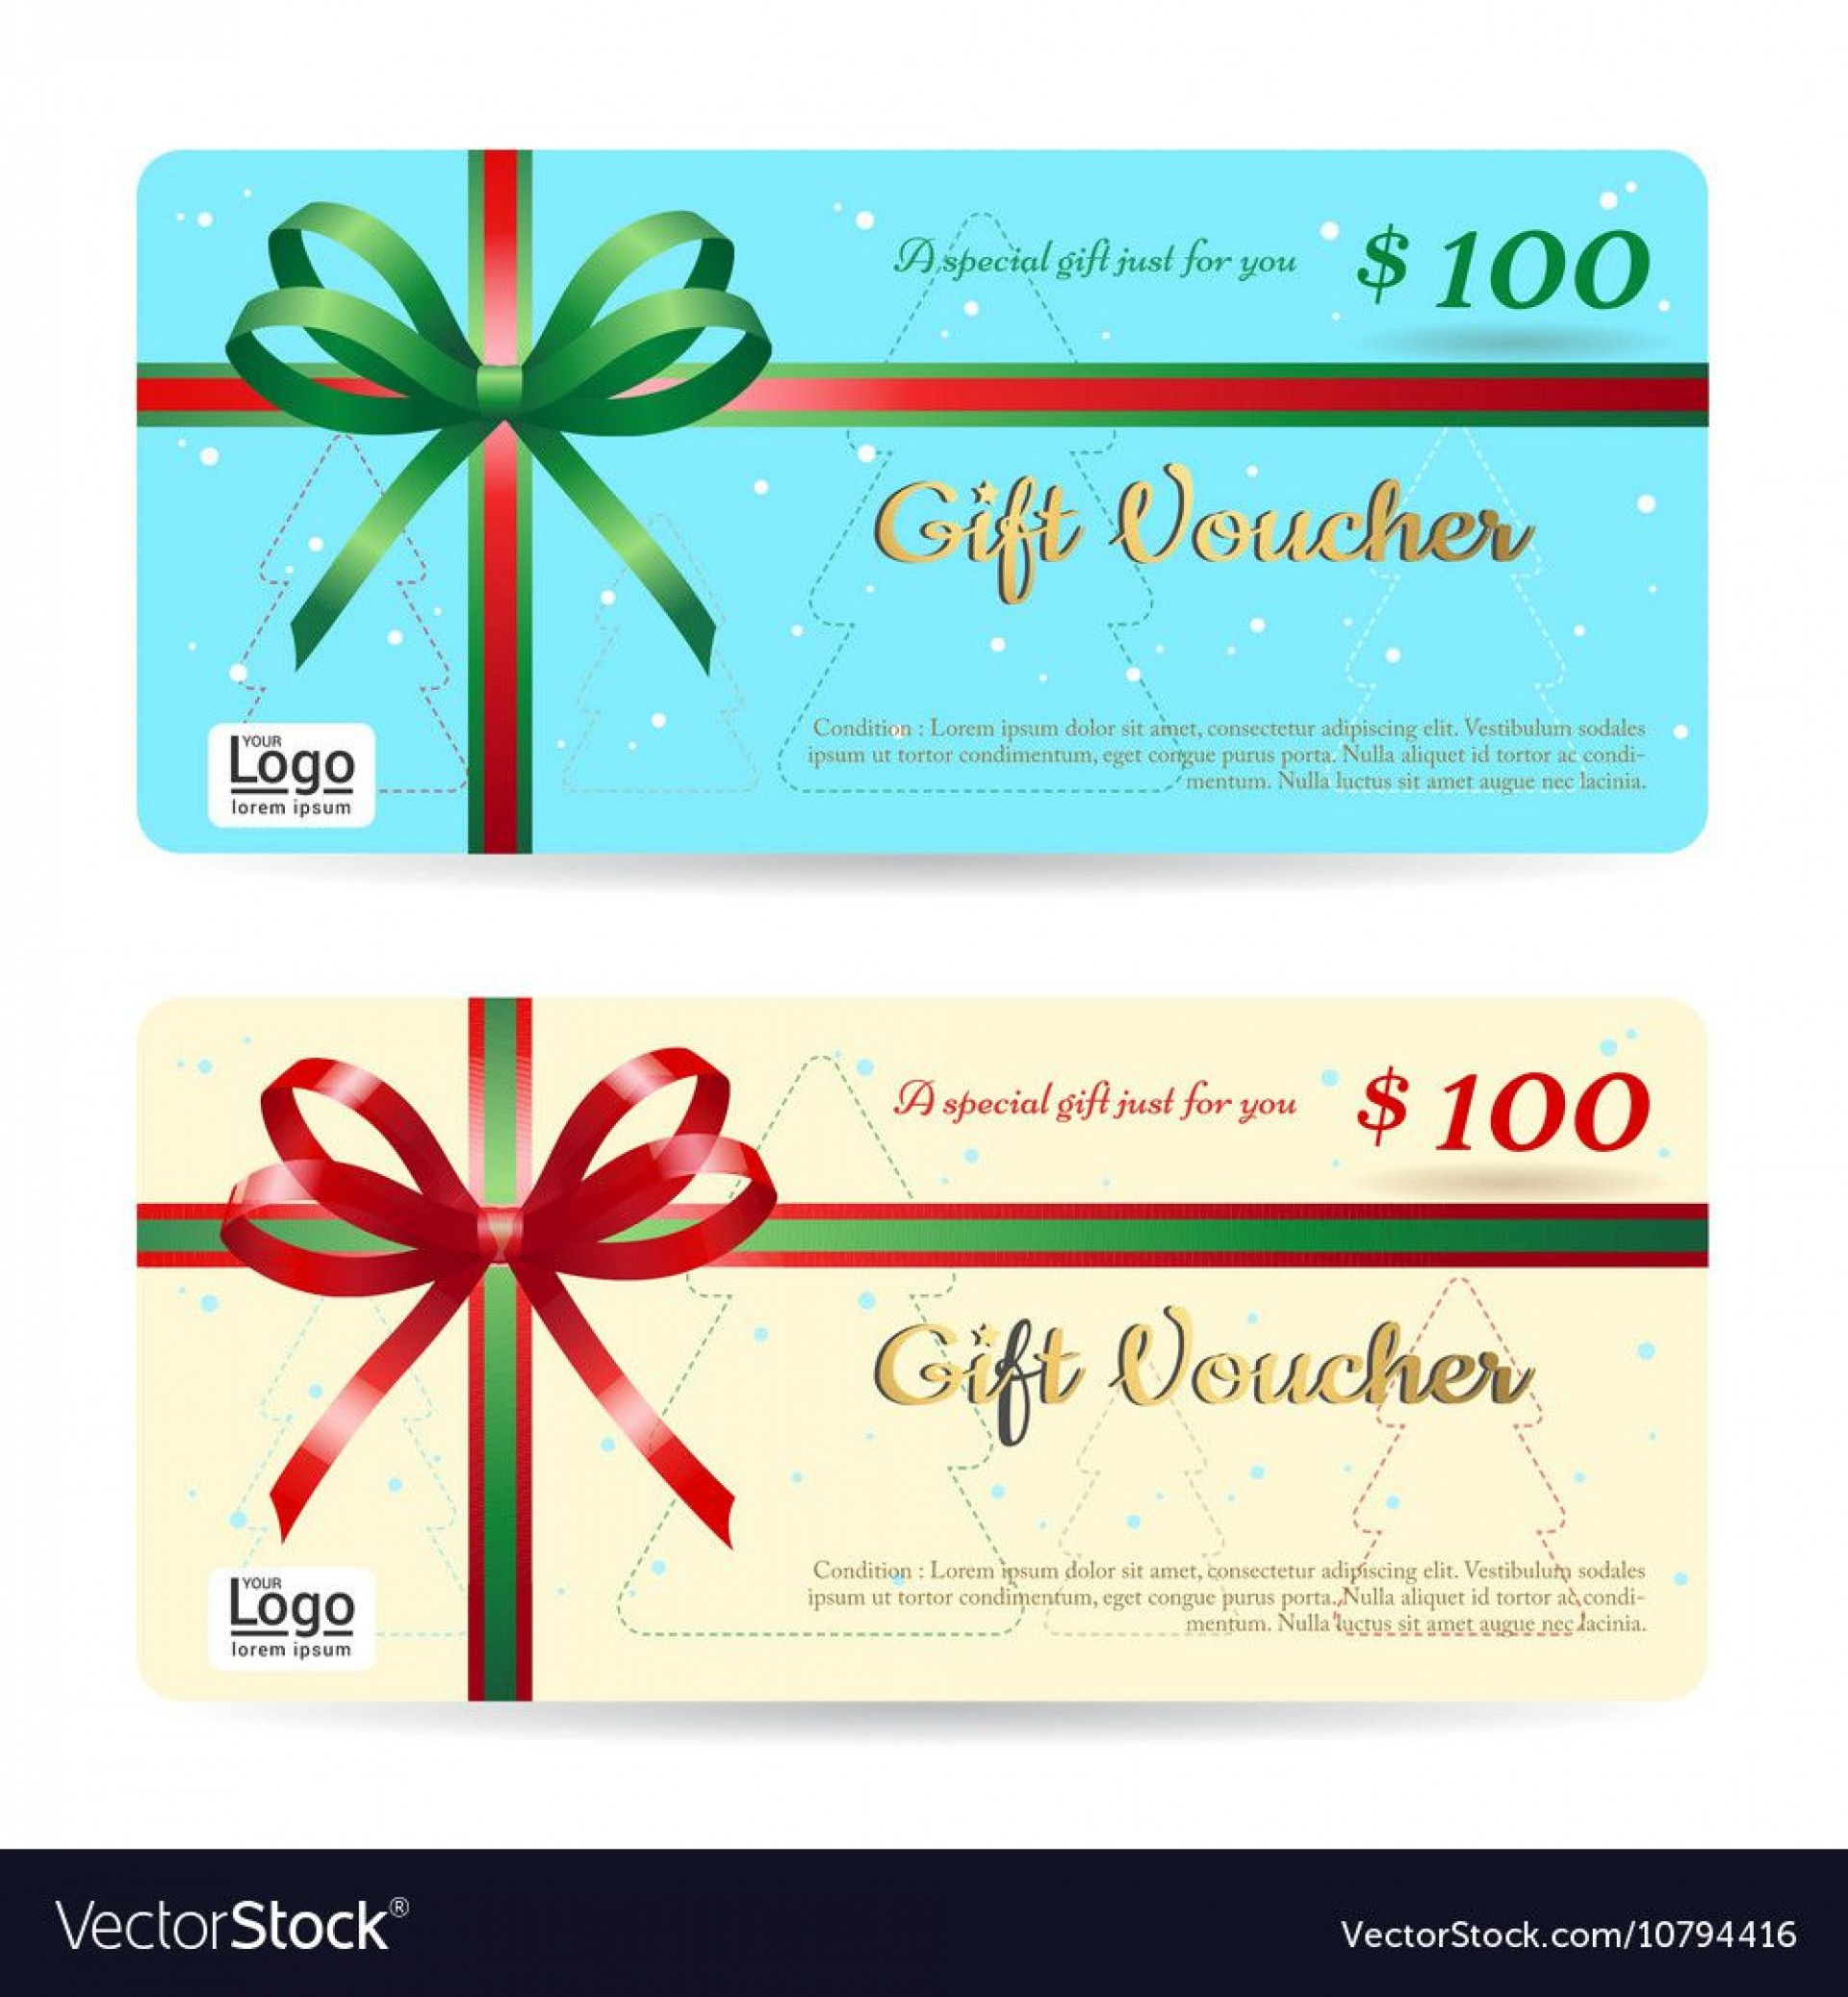 006 Frightening Template For Christma Gift Certificate Free Inspiration  Voucher Uk Editable Download Microsoft Word1920